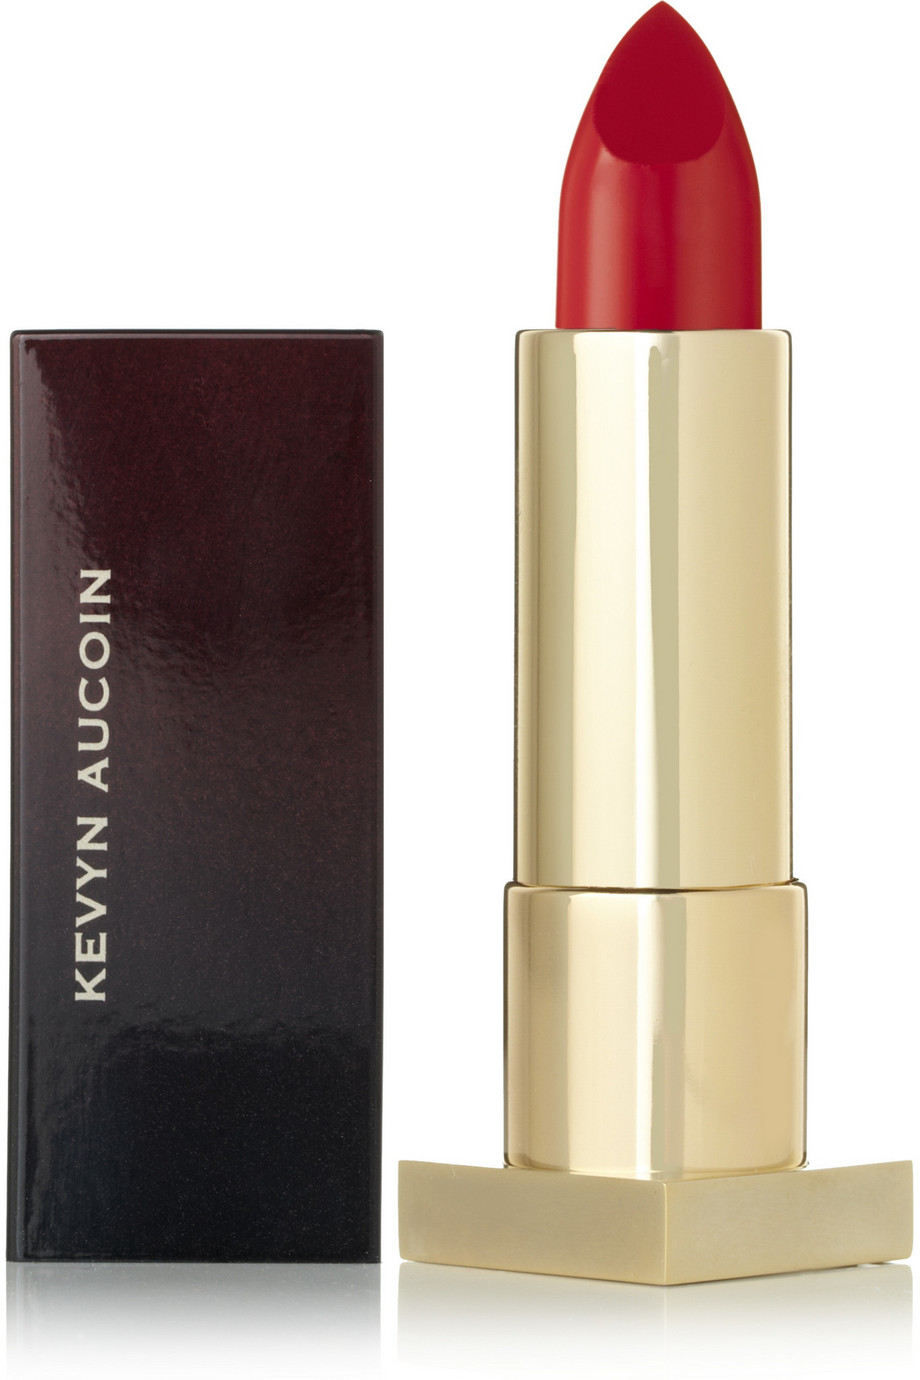 The Expert Lip Color - Eliarice, by Kevyn Aucoin